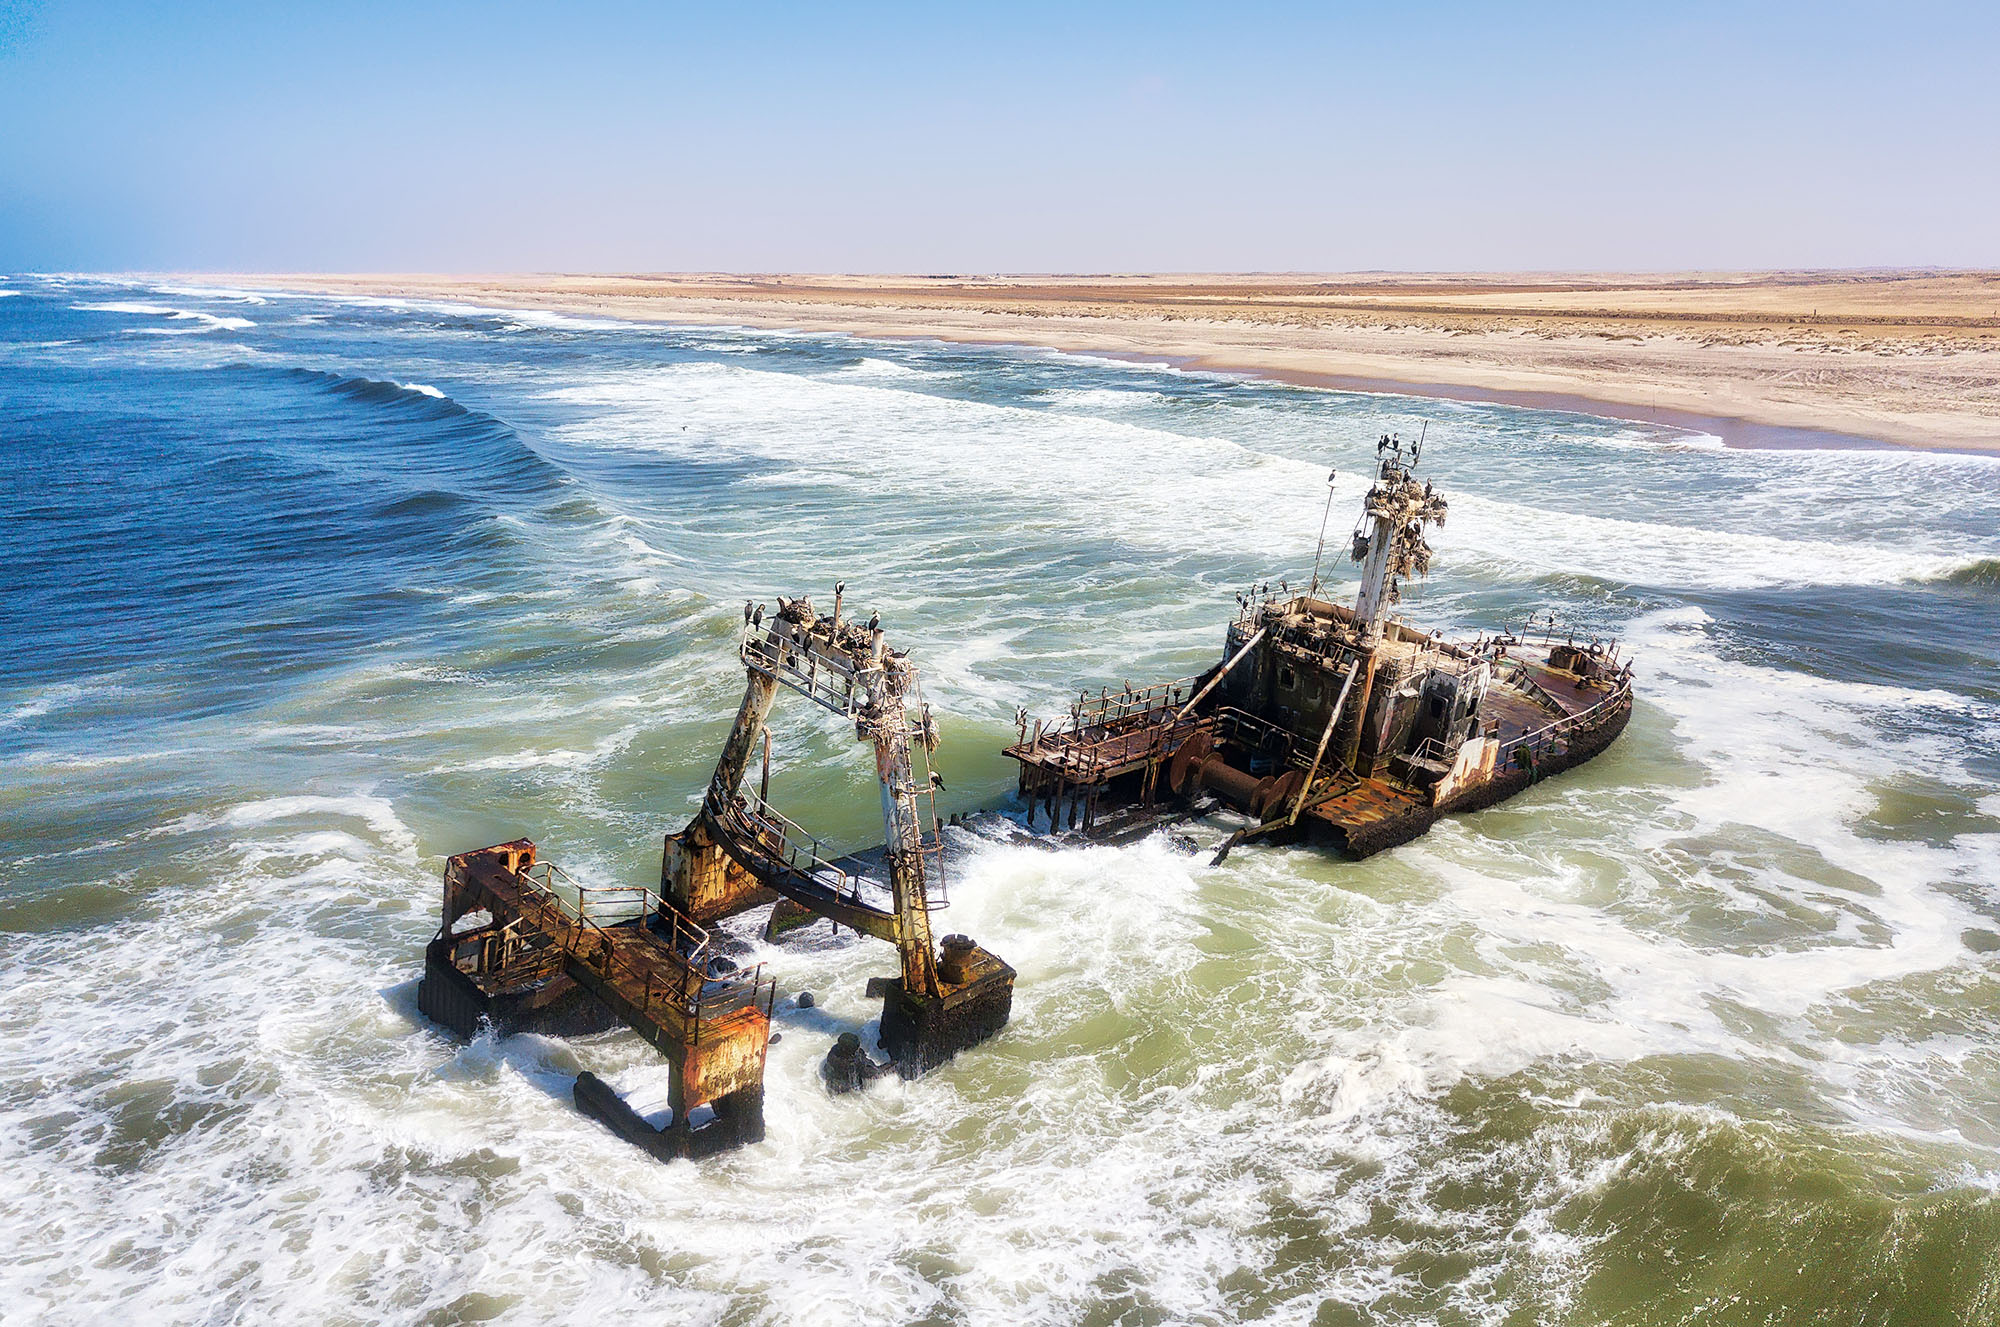 Photos: Along the Namibian Coast - The Atlantic